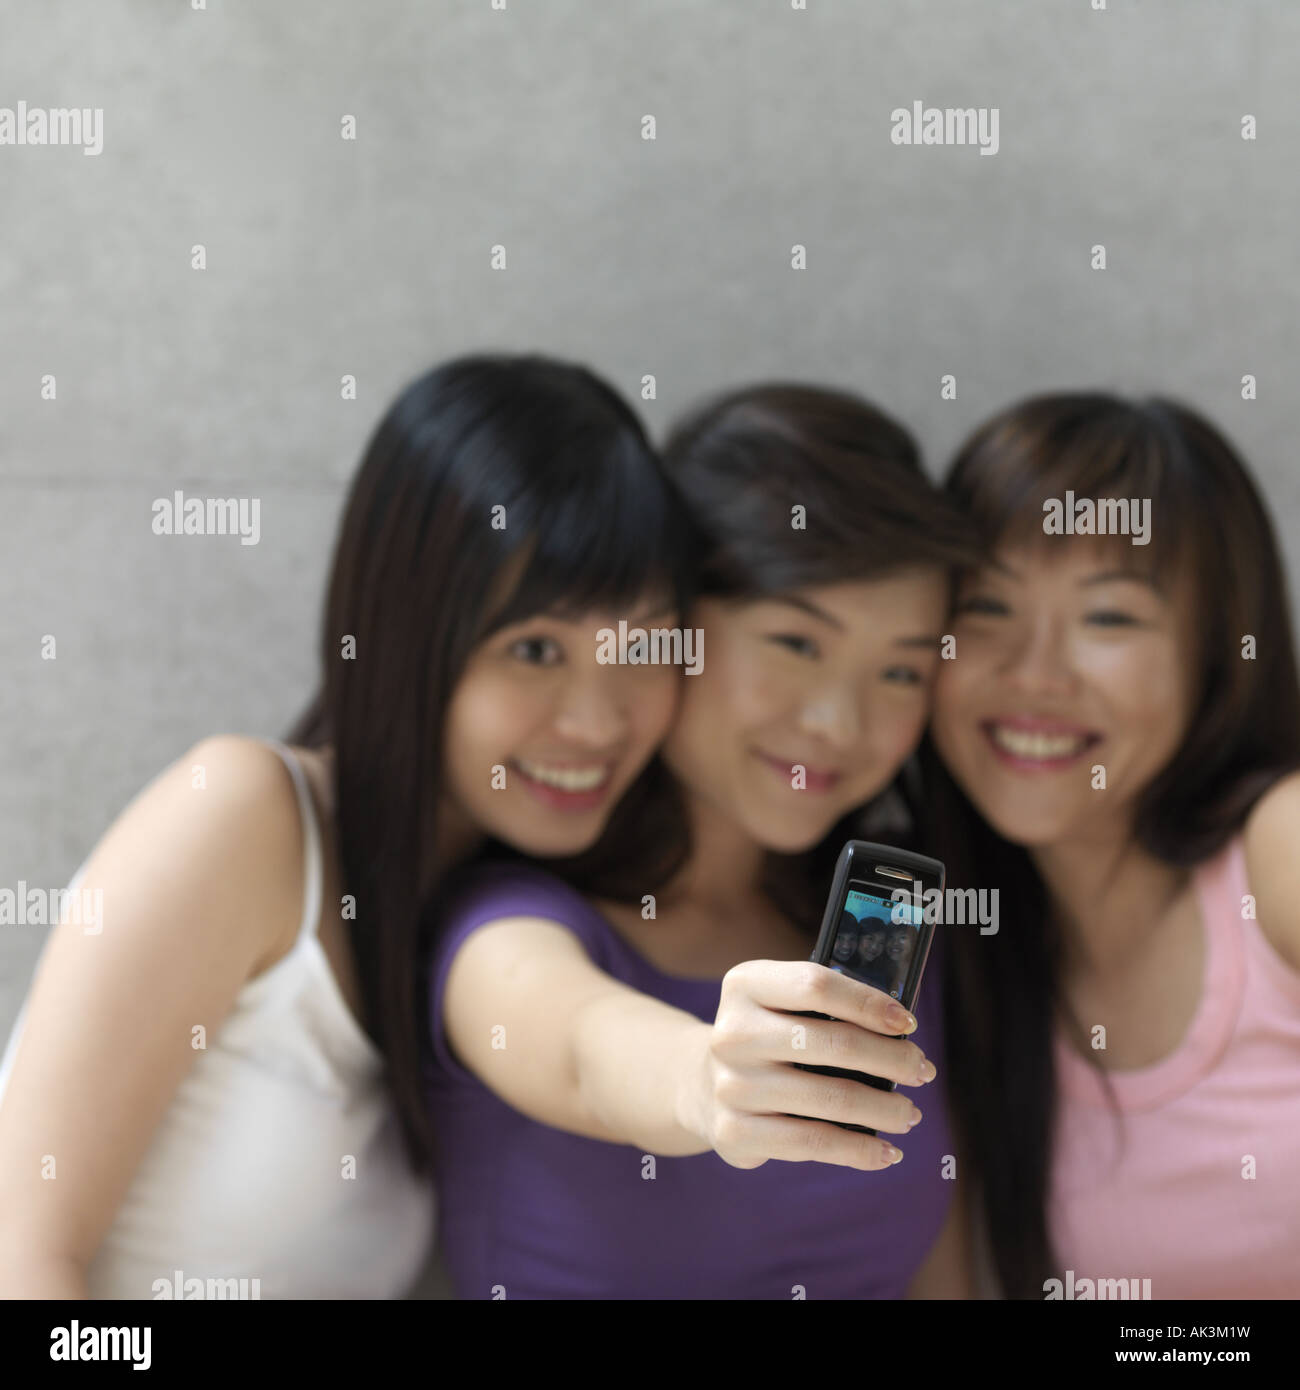 Three women taking photo of themselves with mobile phone, smiling - Stock Image